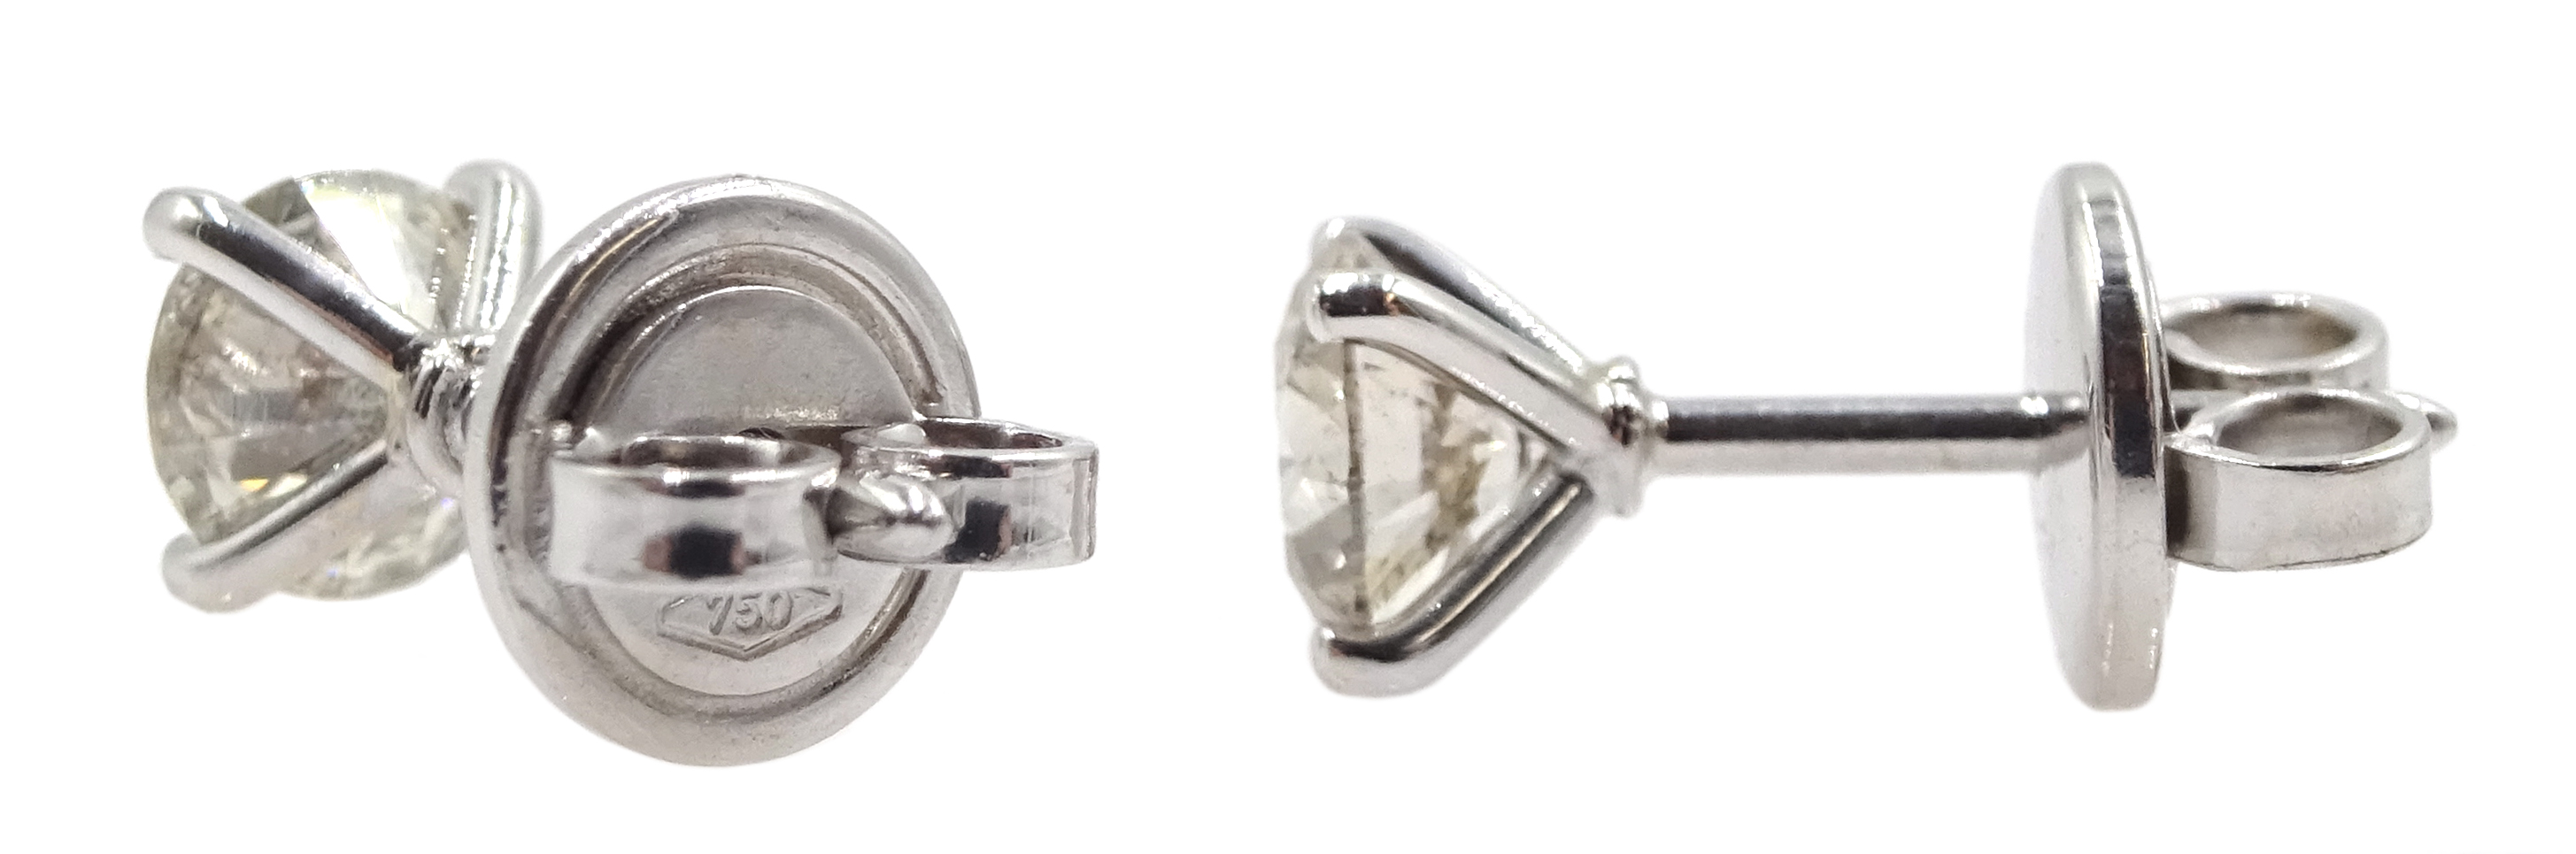 Pair of 18ct white gold brilliant cut diamond stud earrings - Image 2 of 3